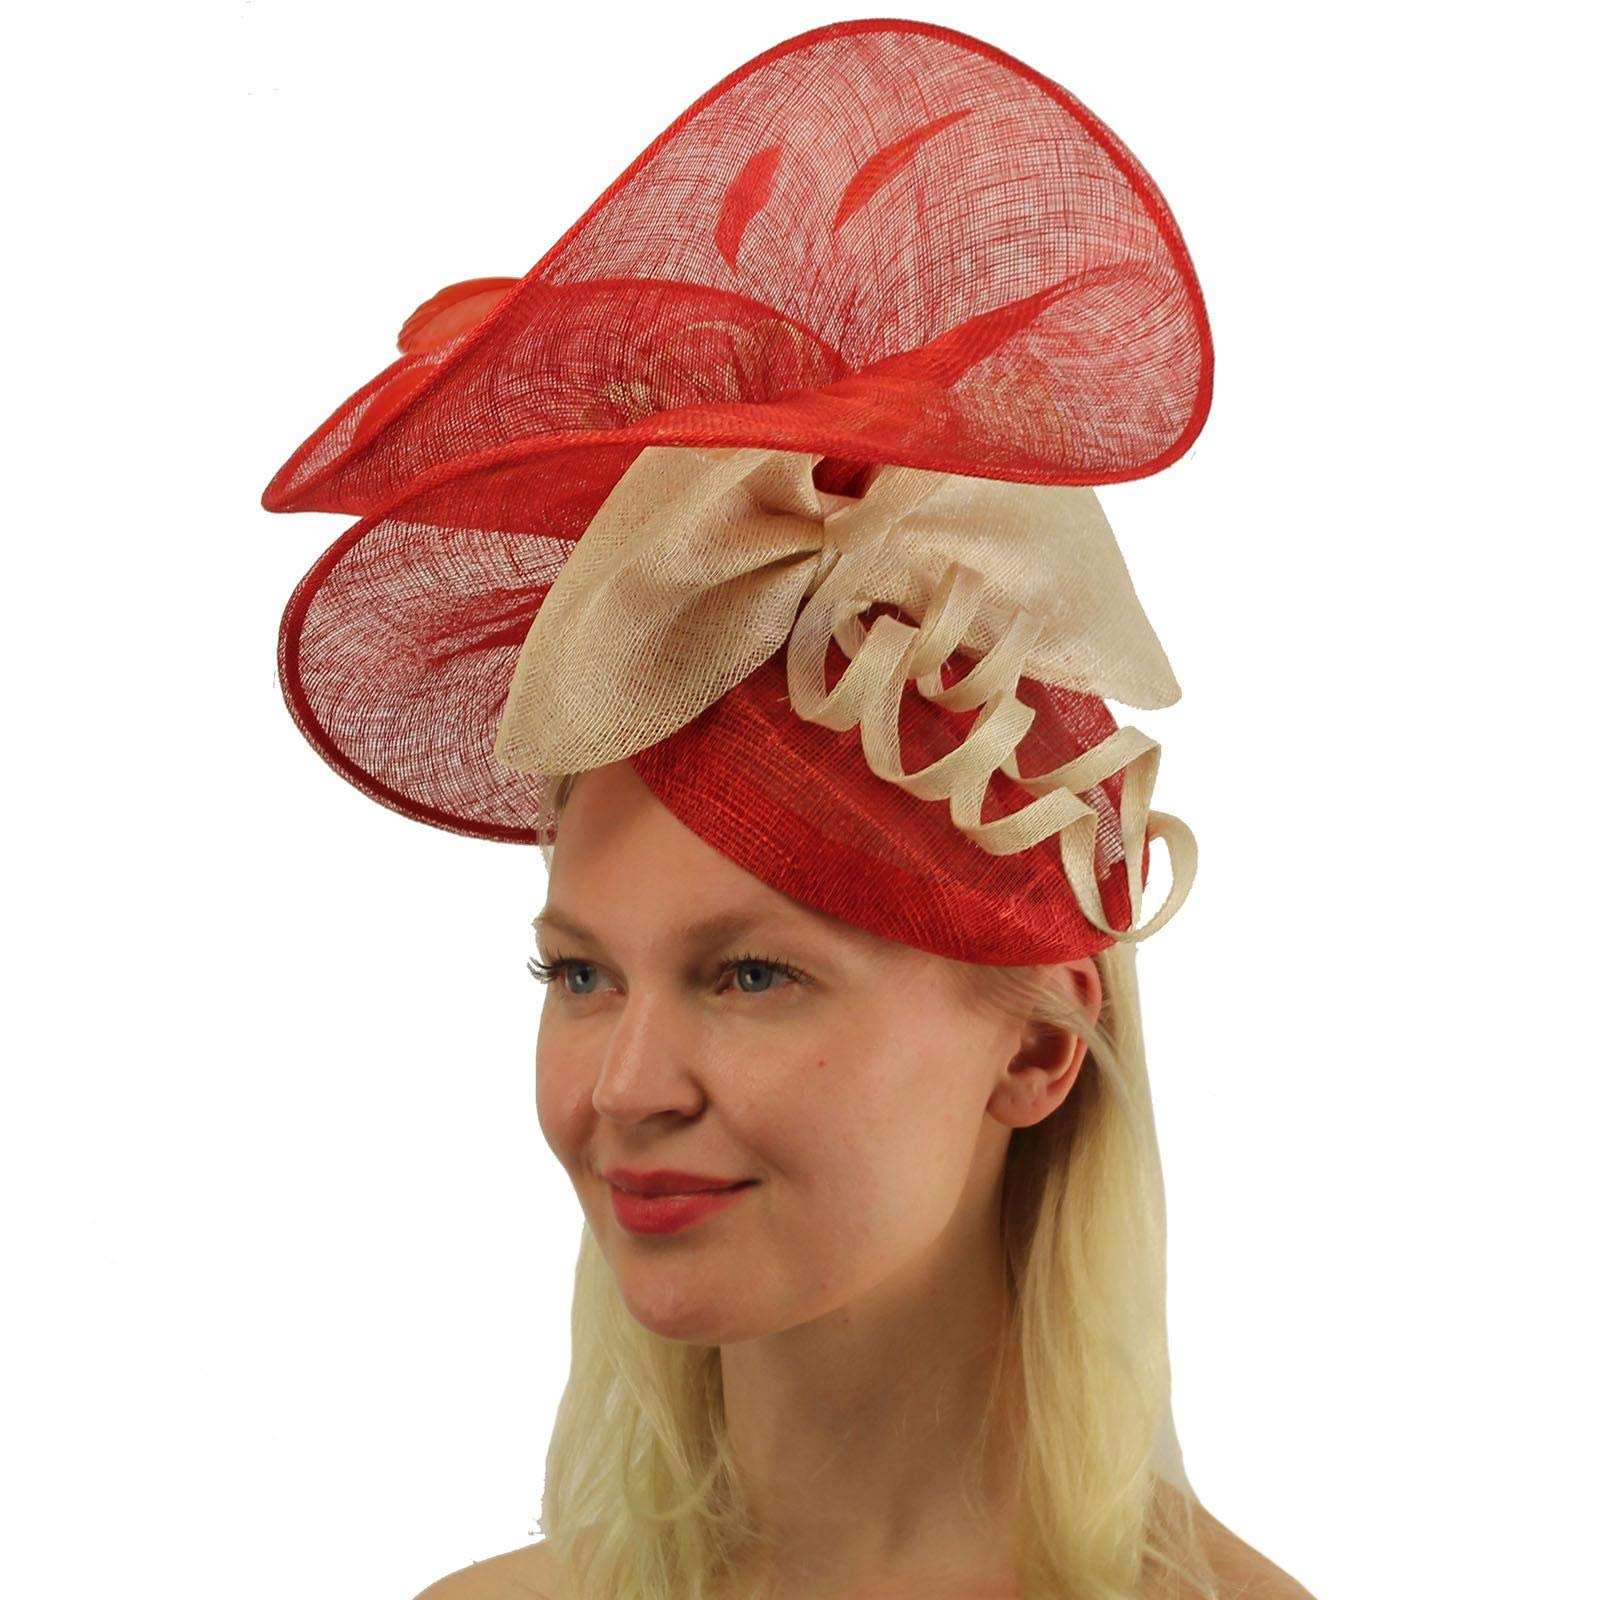 Fancy Sinamay Feathers Fascinators Headband Bridal Cocktail Derby Cap Hat Red